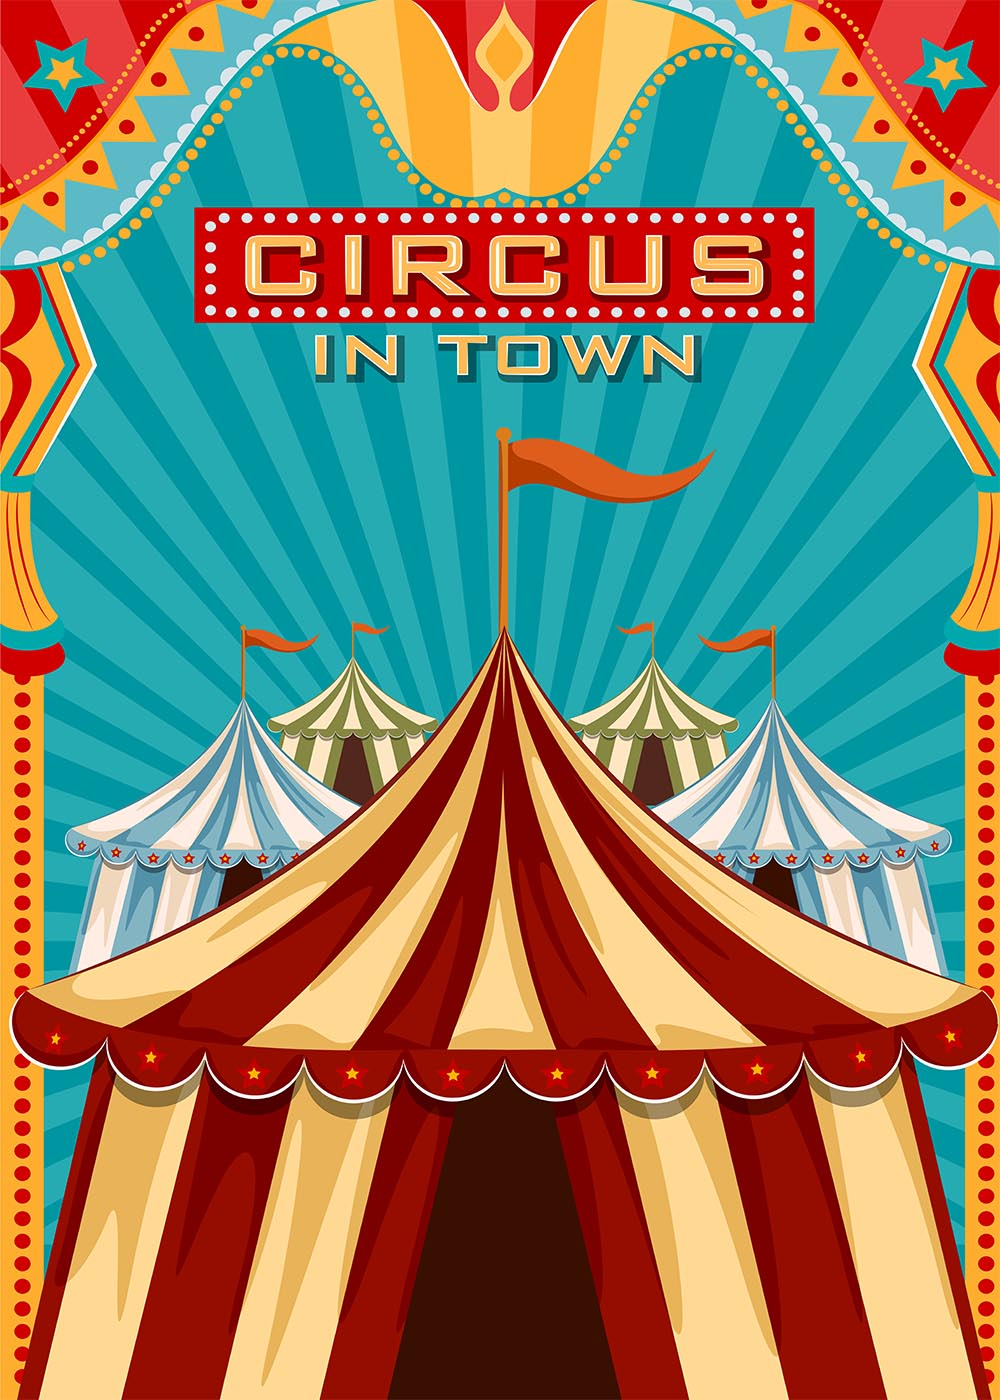 Details About Circus Carnival Party Theme Backdrop Carnival Party Cake Table Background Decors